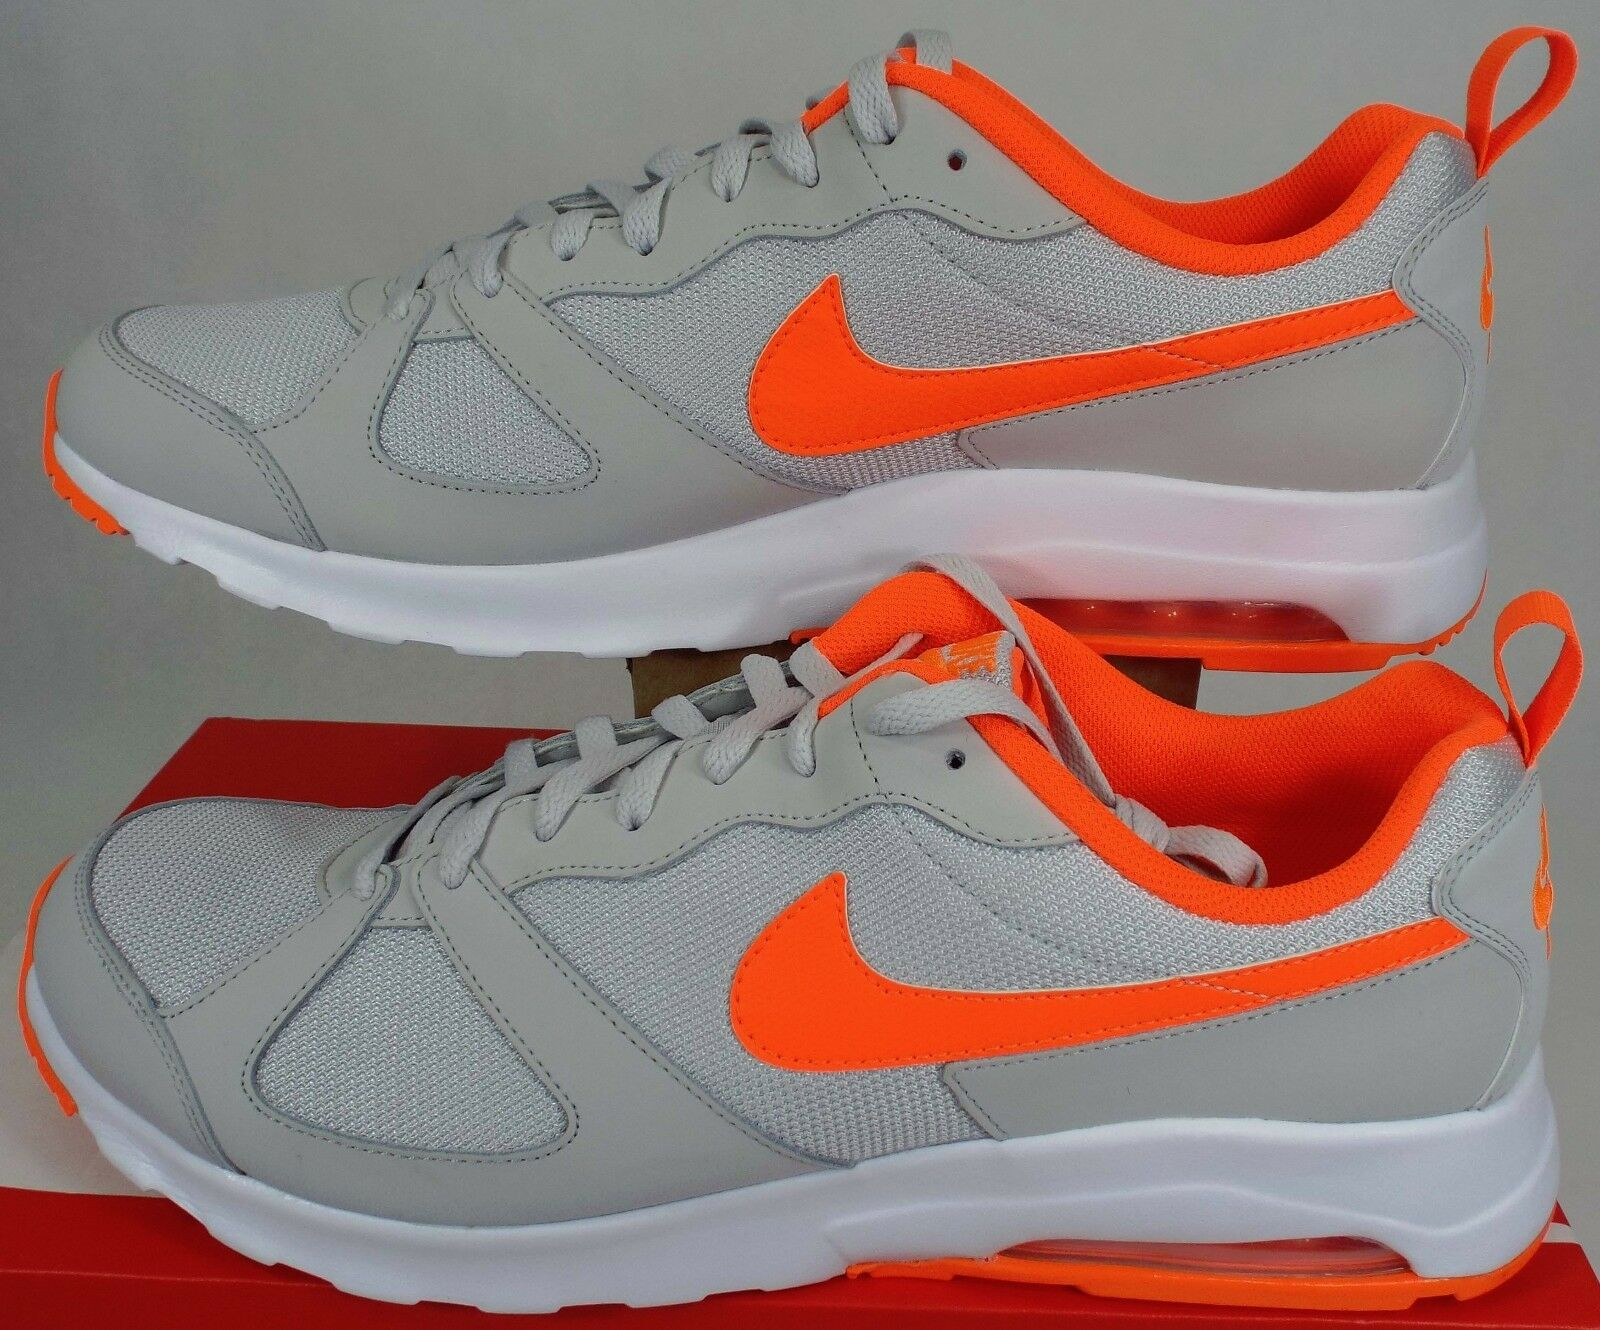 New Mens 15 NIKE Air Max Muse Ash Grey 652981-060 Hyper Crimson Shoes 75 652981-060 Grey dd4464